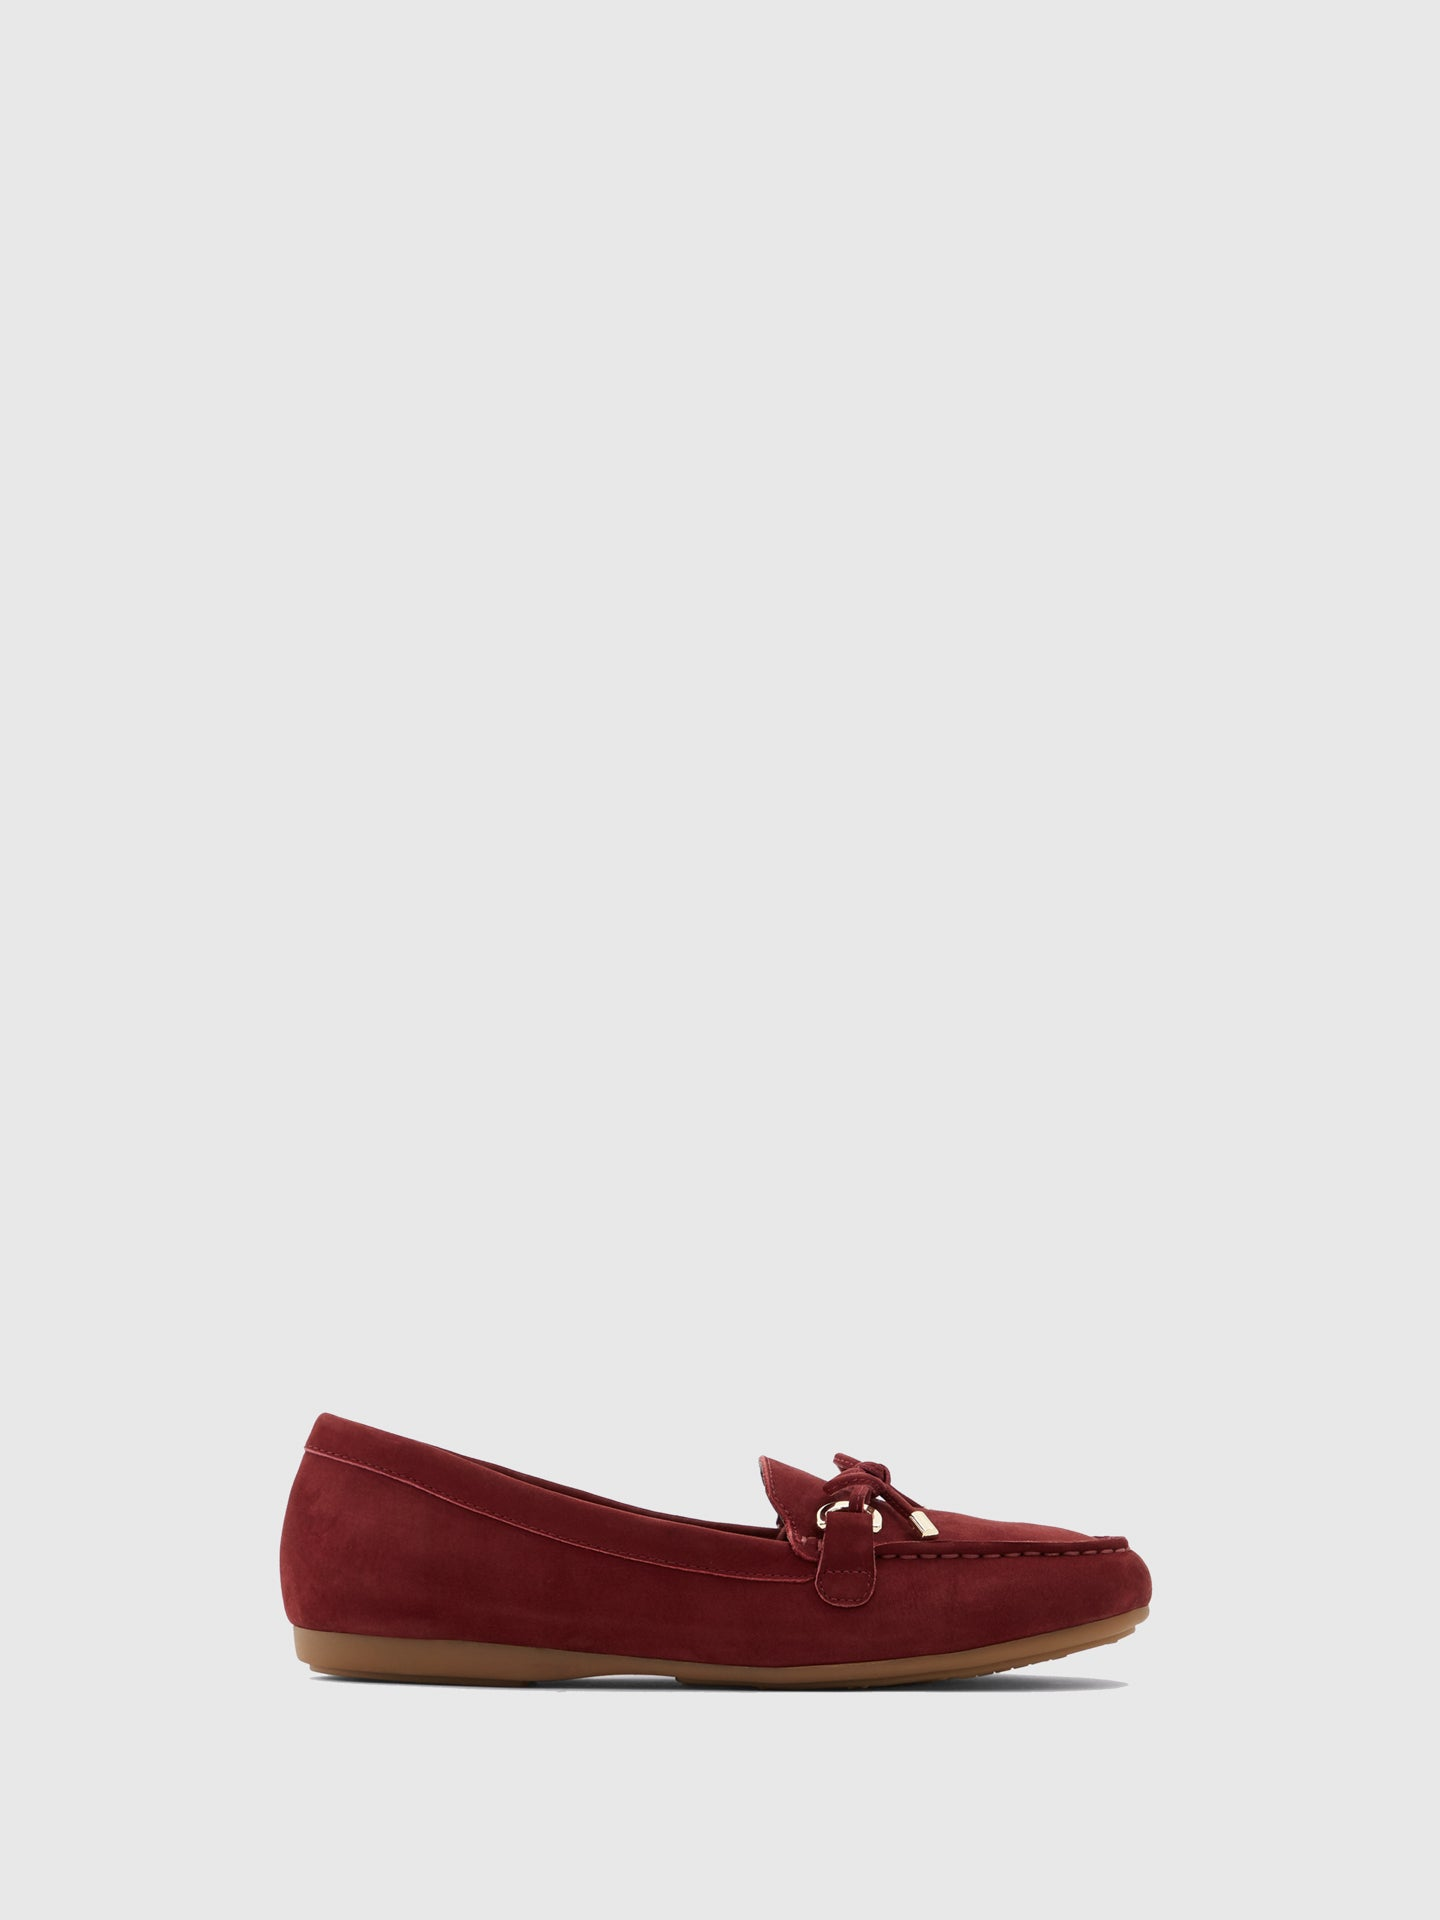 Aldo DarkRed Mocassins Shoes